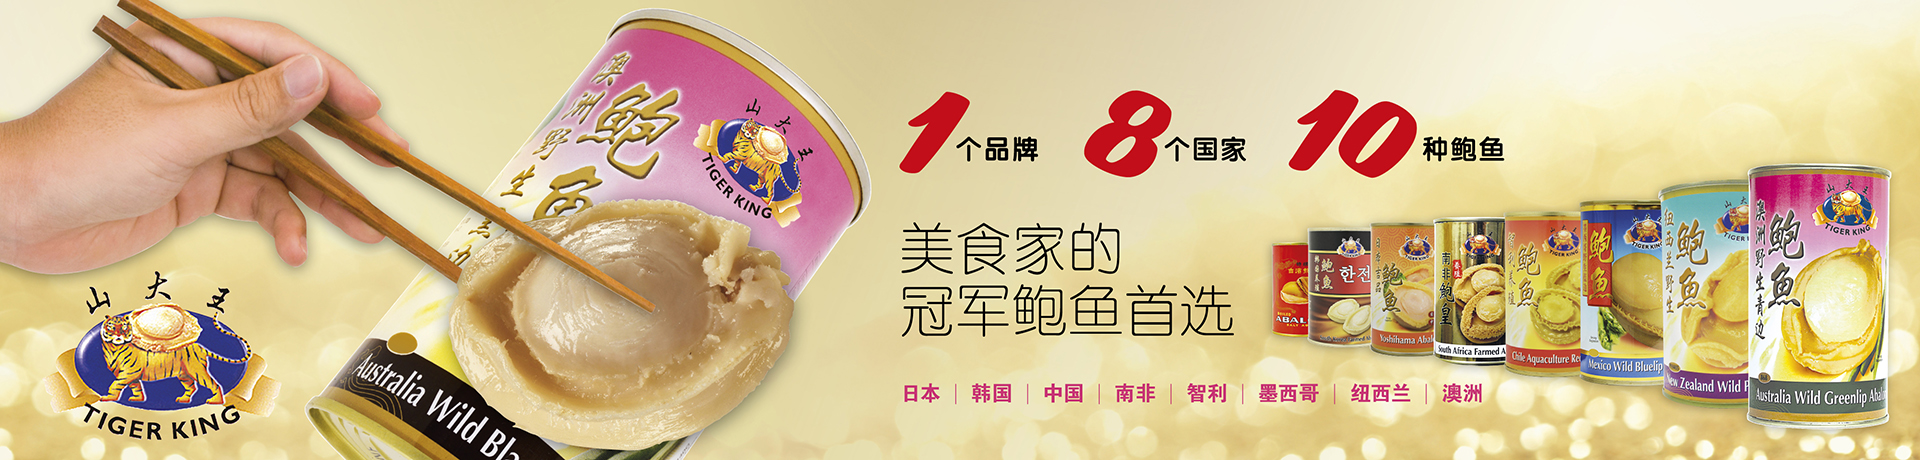 HHT_Homepage Top Banner_Abalone_1920x460_1